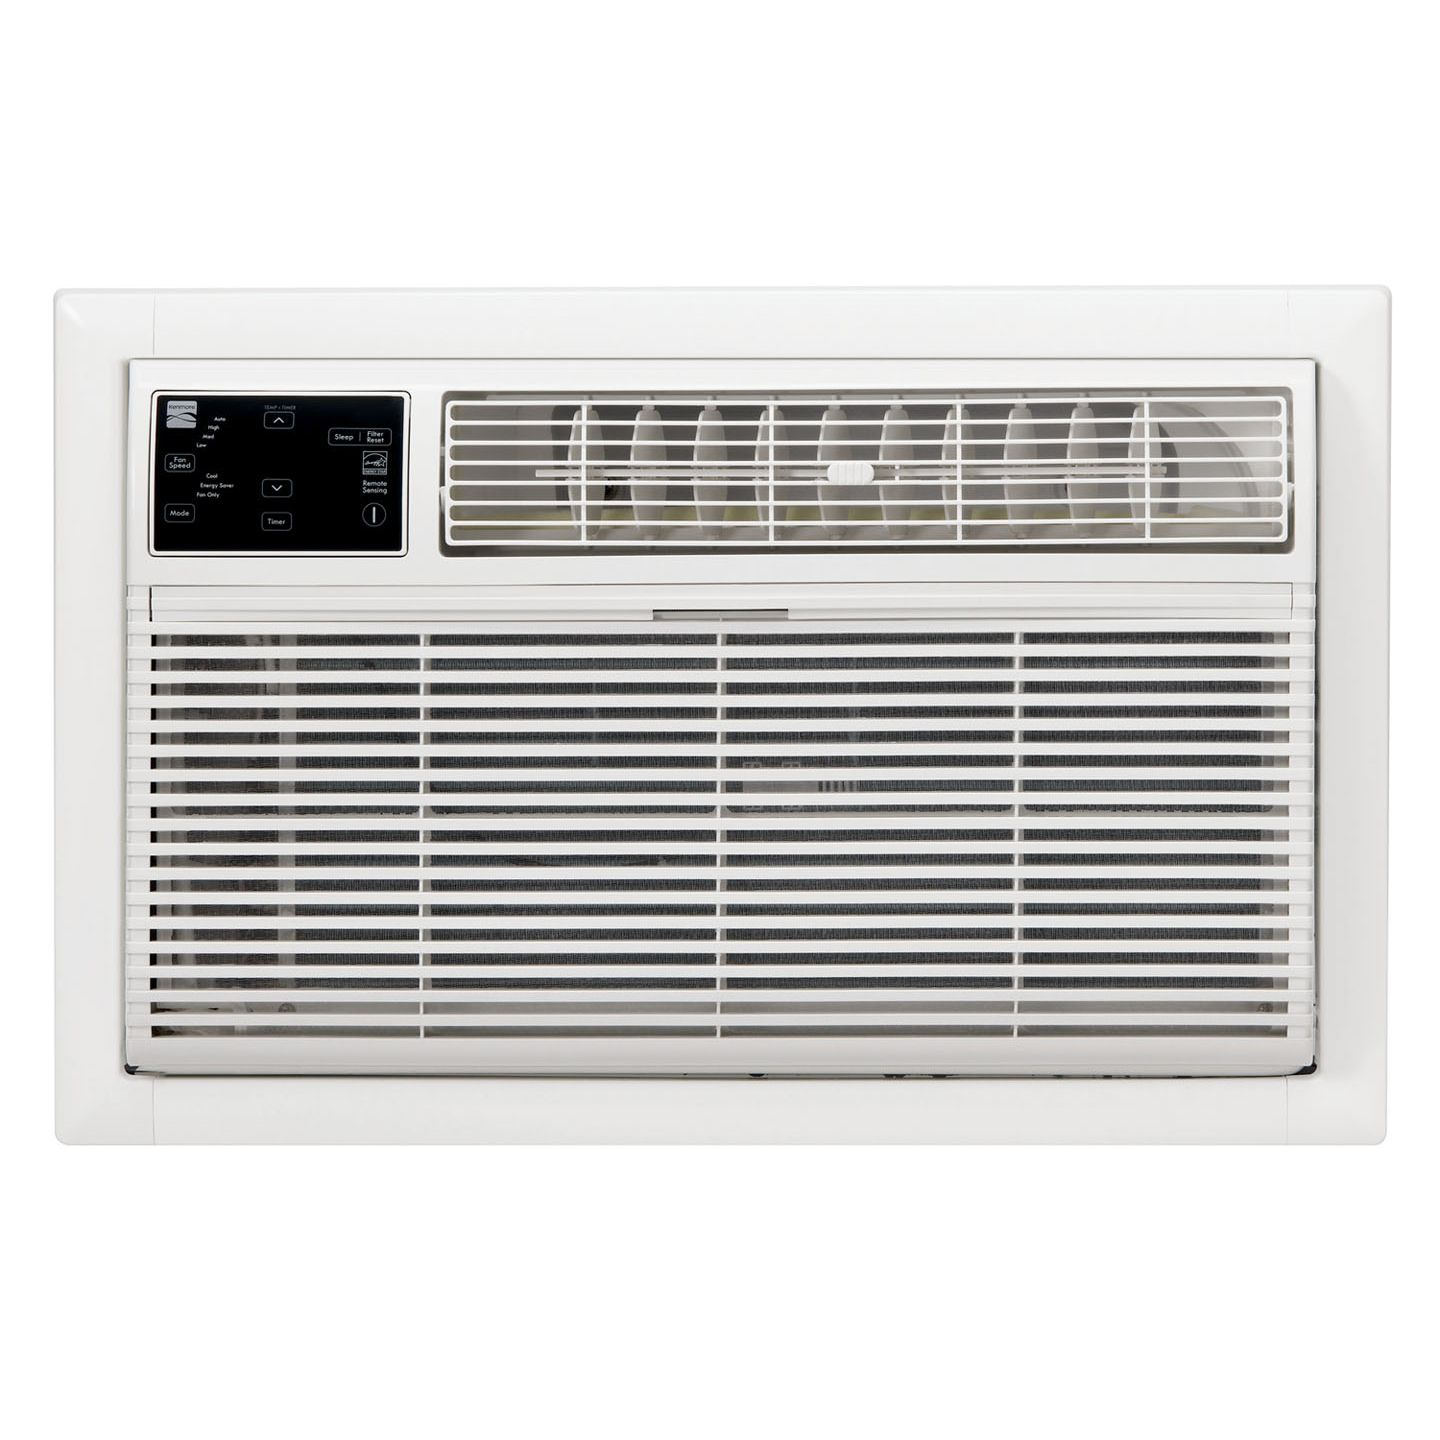 Large Capacity Air Conditioners